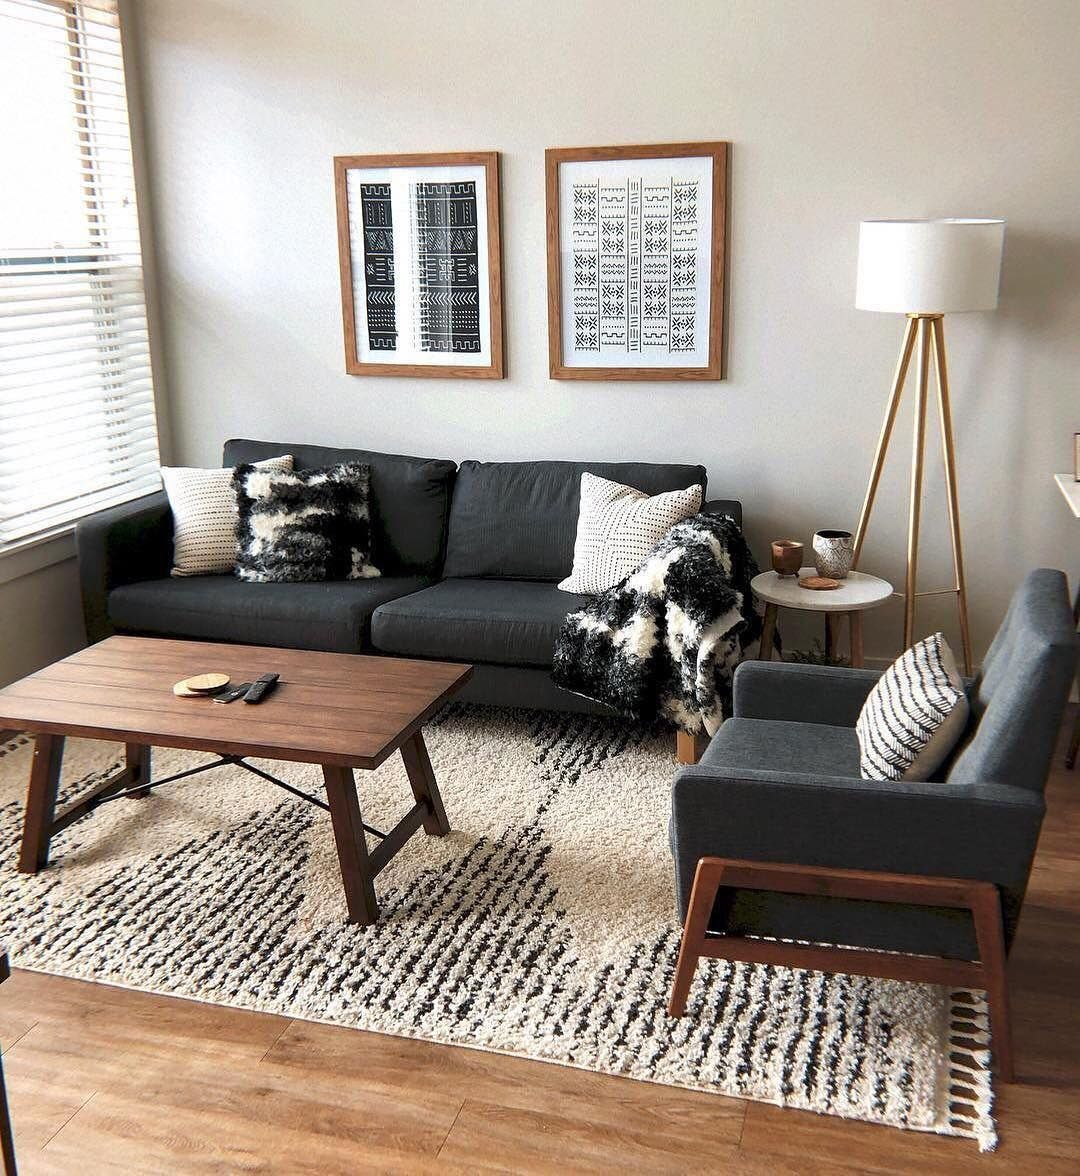 "Wayfair Canada on Instagram: ""Think comfy chic 💭 This charcoal"